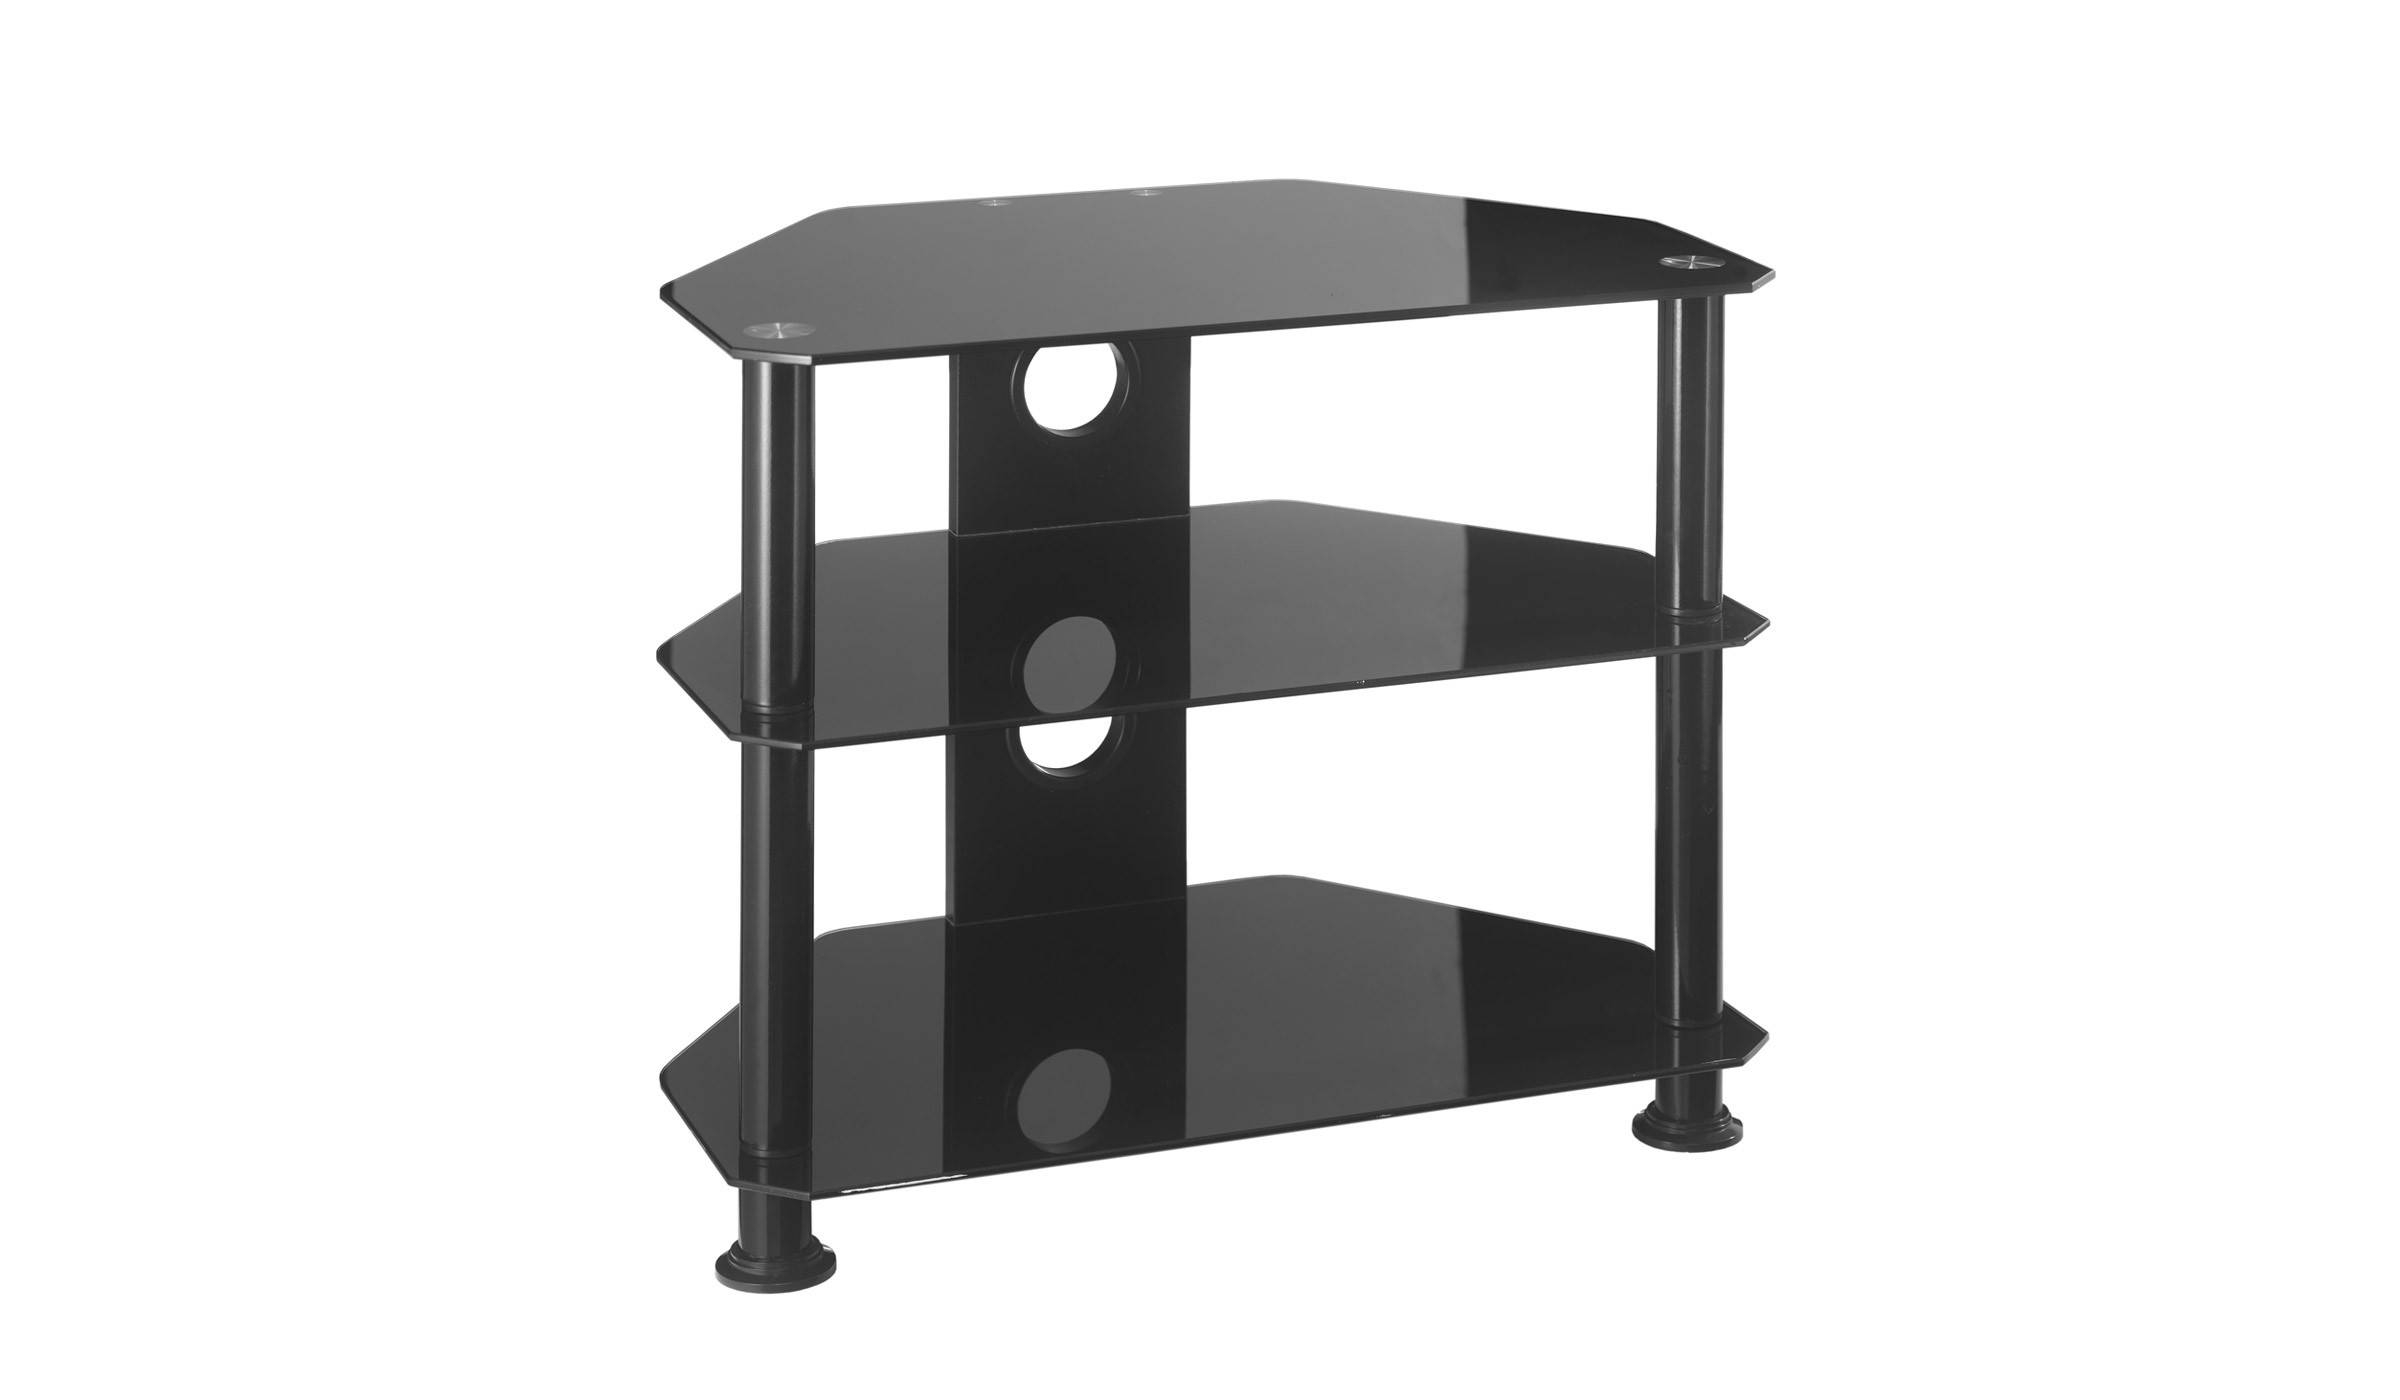 Glass Tv Stands & Tv Cabinets | Tv Wall Brackets & Mounts With Regard To Smoked Glass Tv Stands (View 10 of 15)